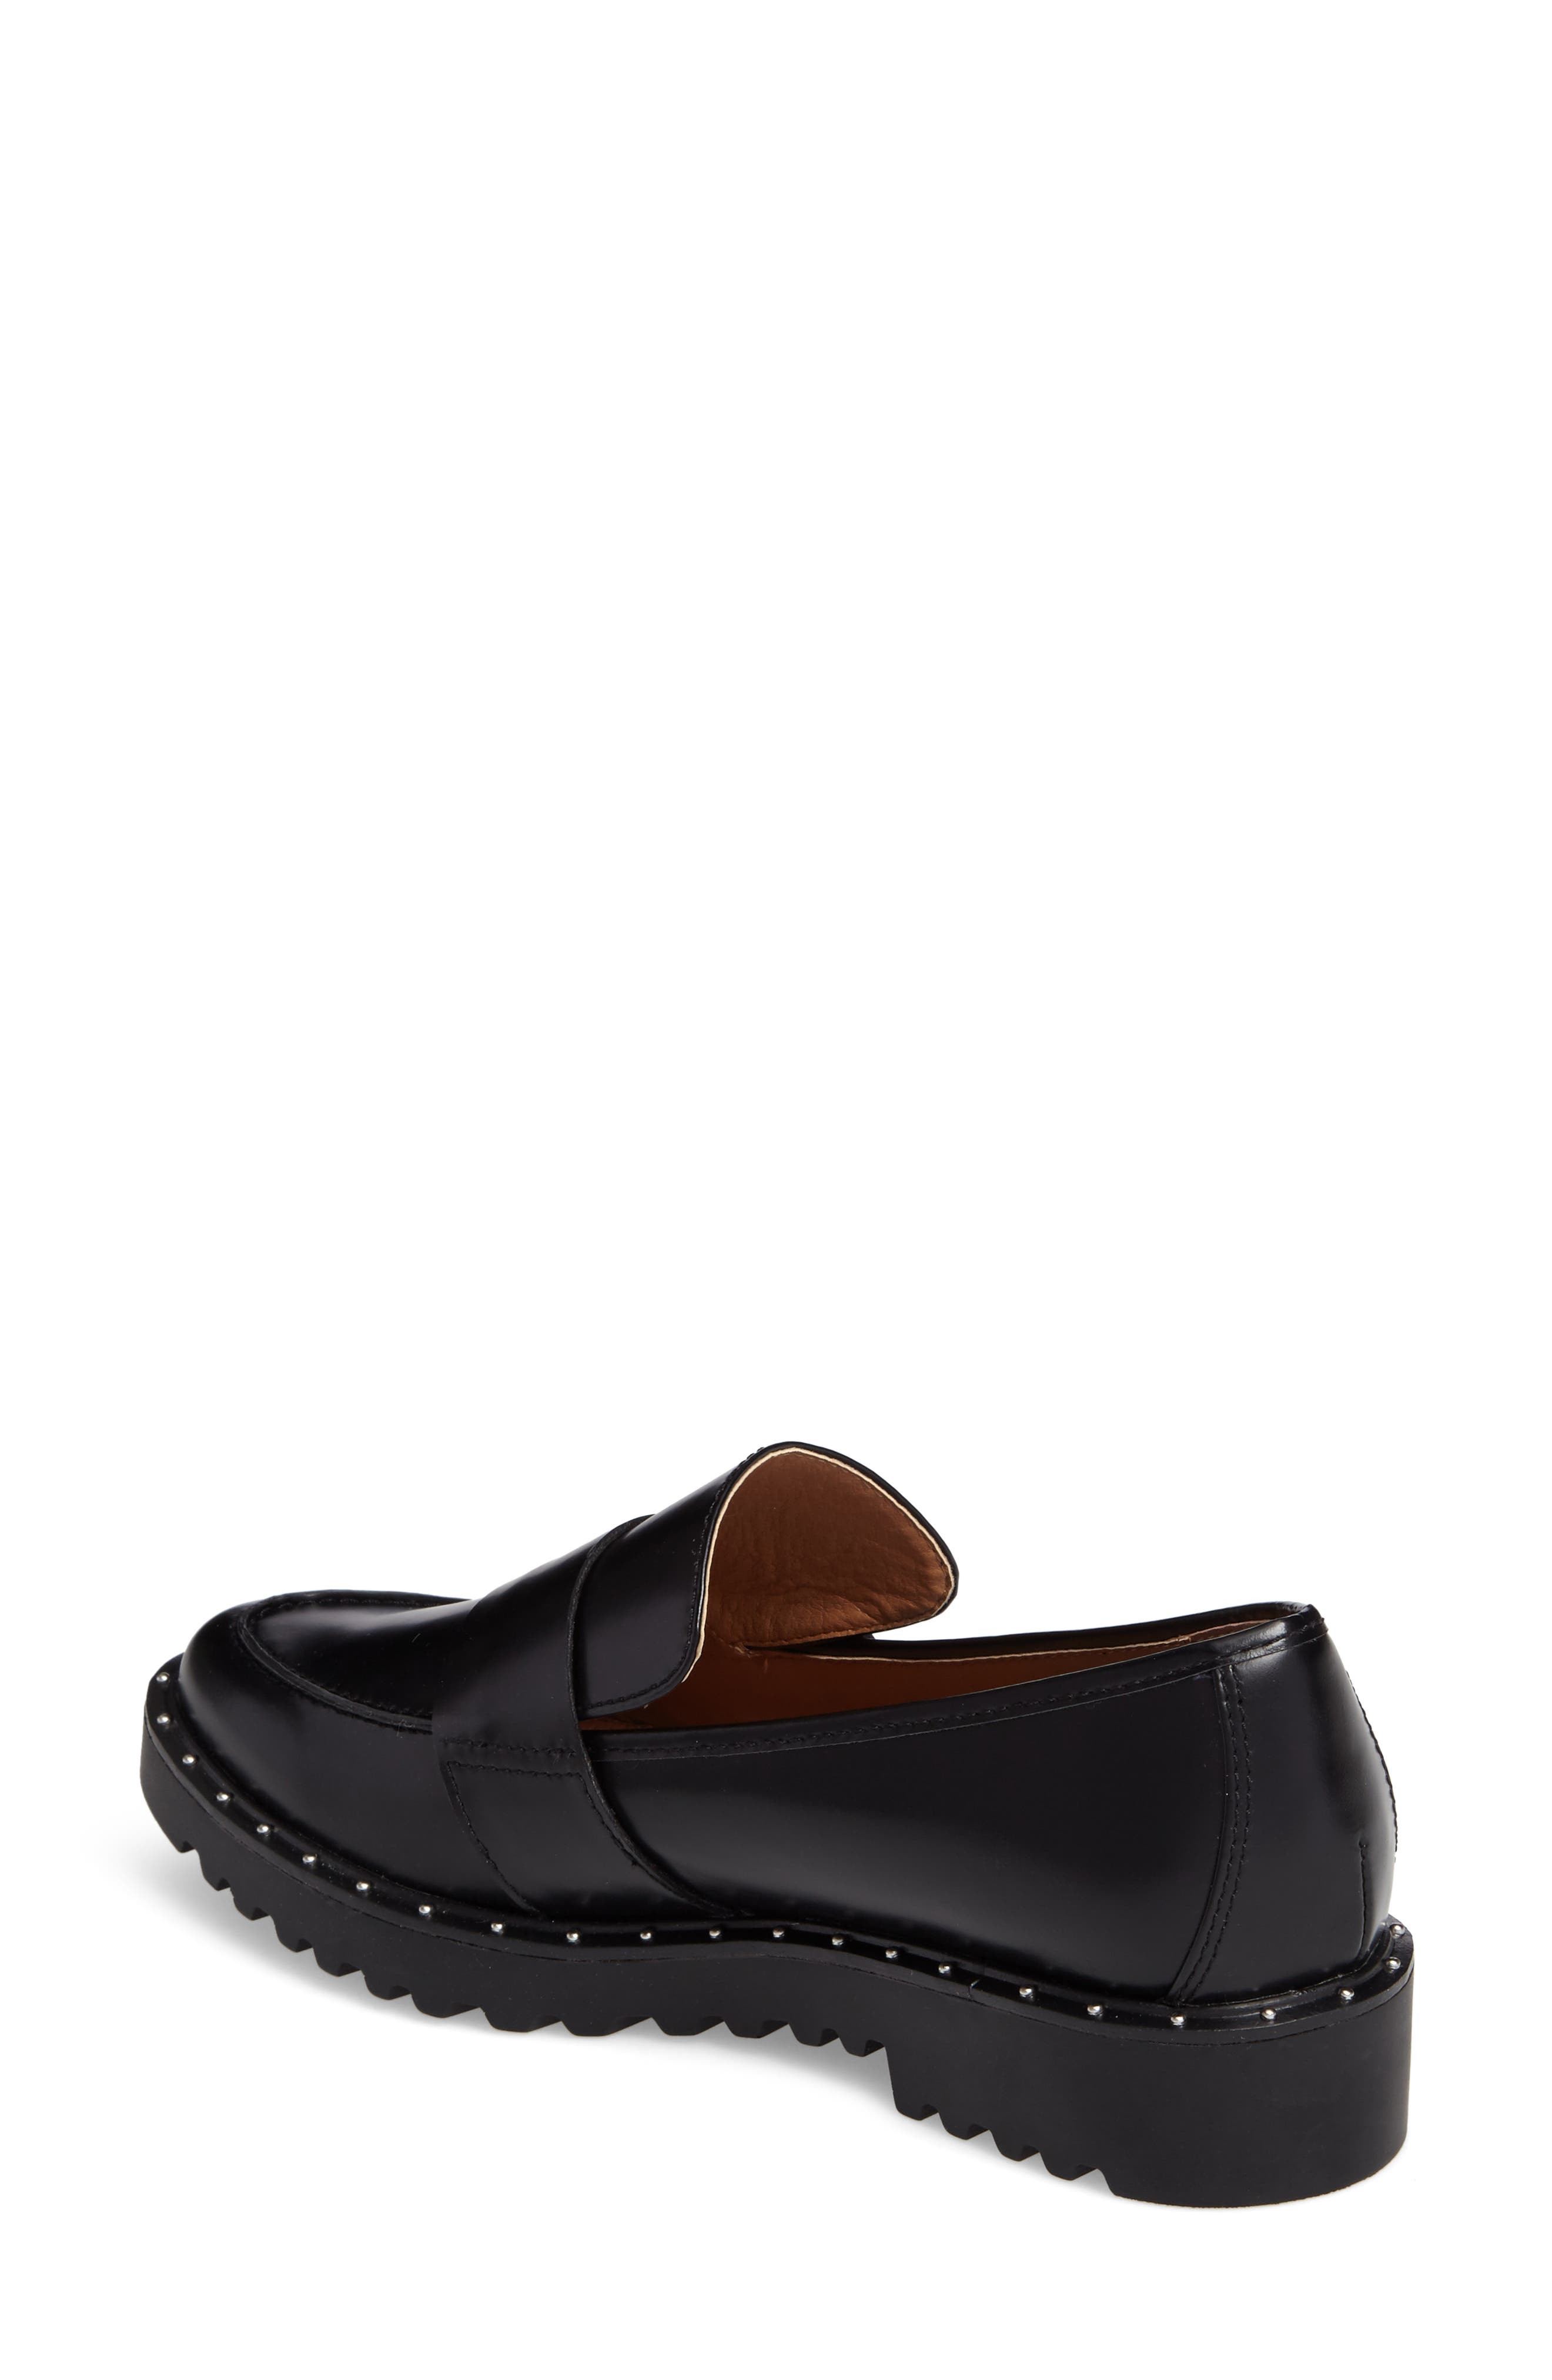 Emily Studded Genuine Calf Hair Flat,                             Alternate thumbnail 2, color,                             001